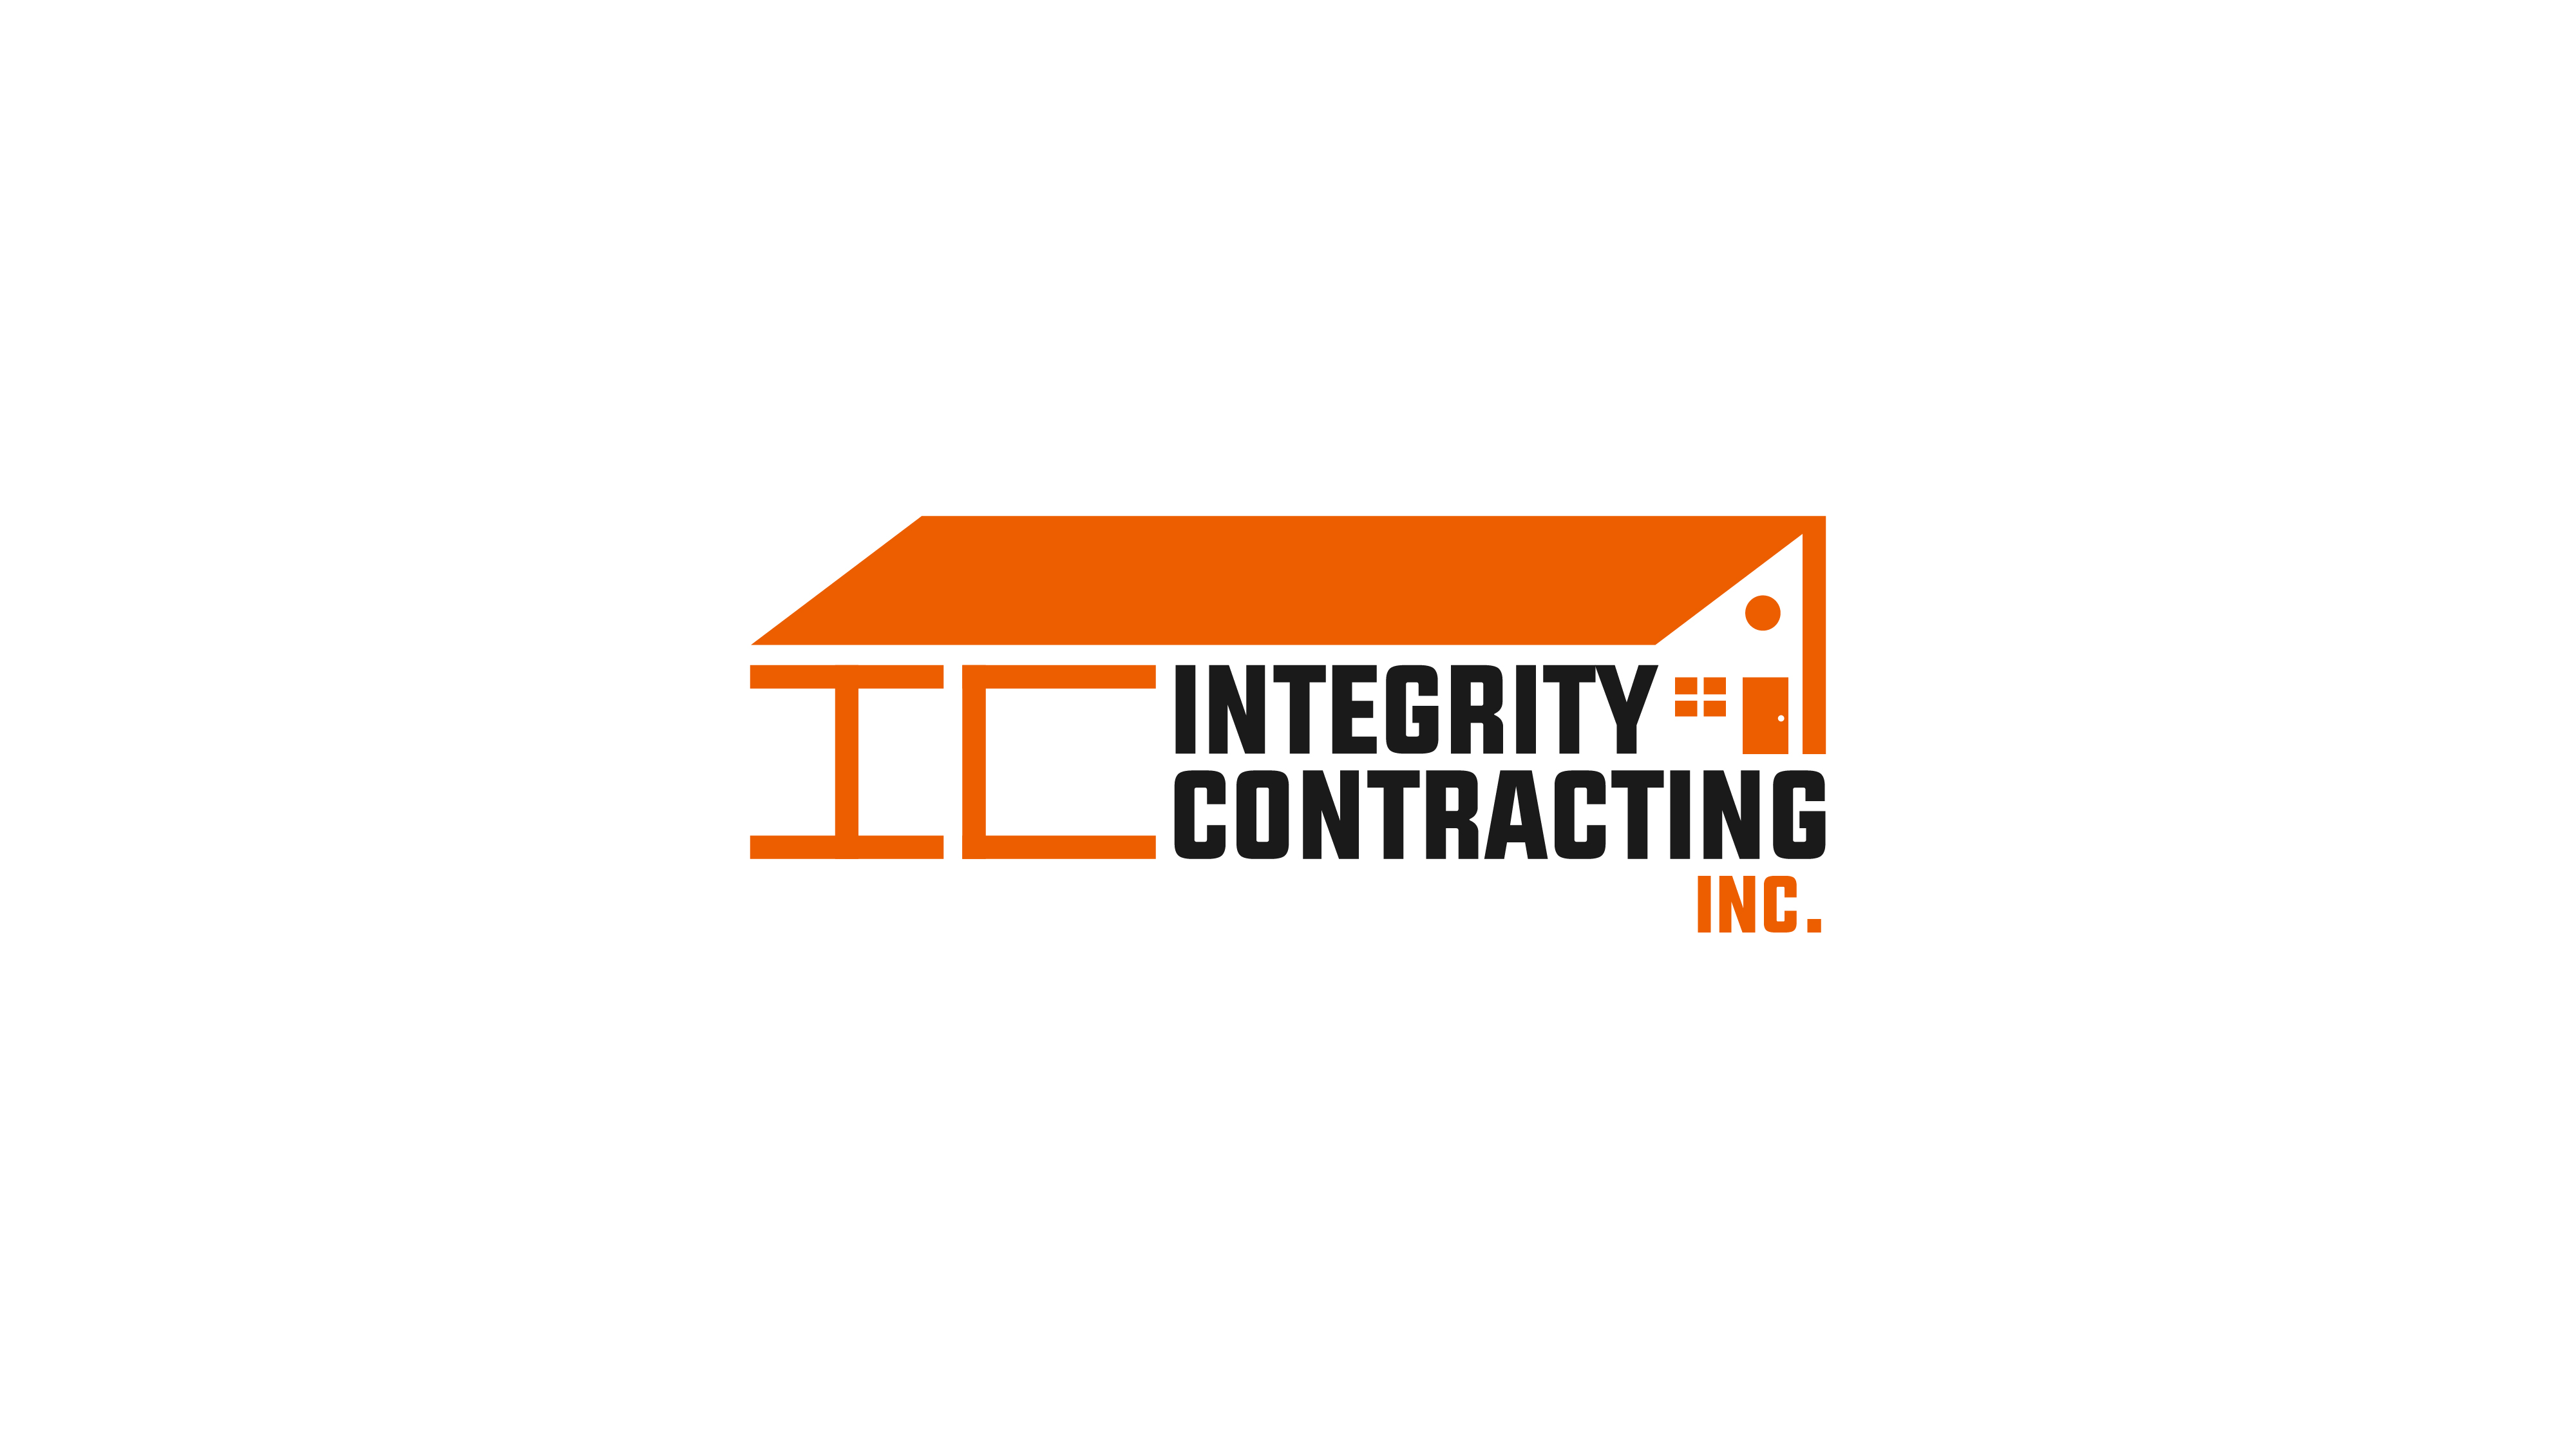 Integrity Contracting Inc